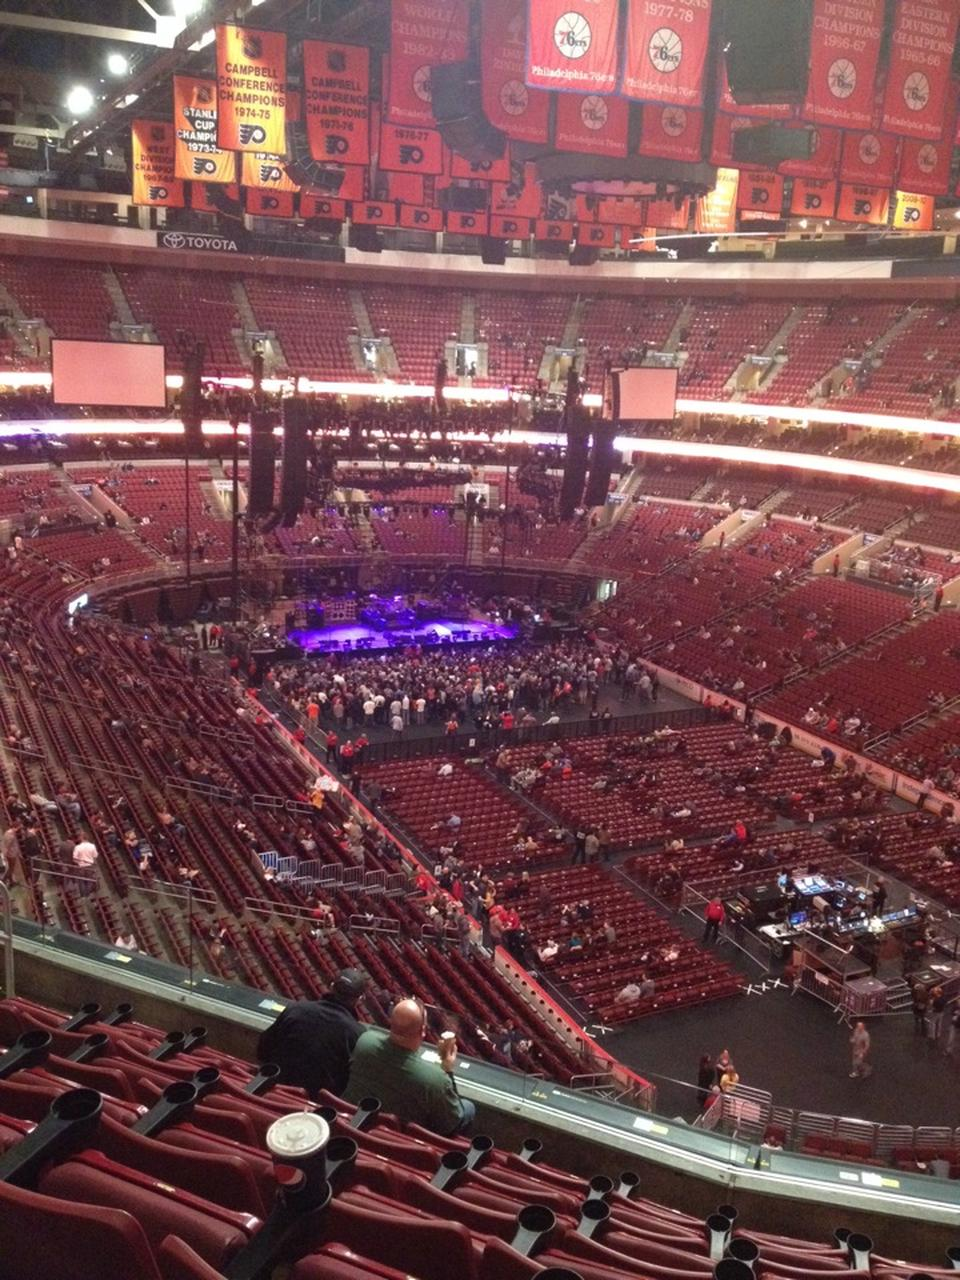 Hd Image Of Wells Fargo Center Section 205a Concert Seating Rateyourseats Com